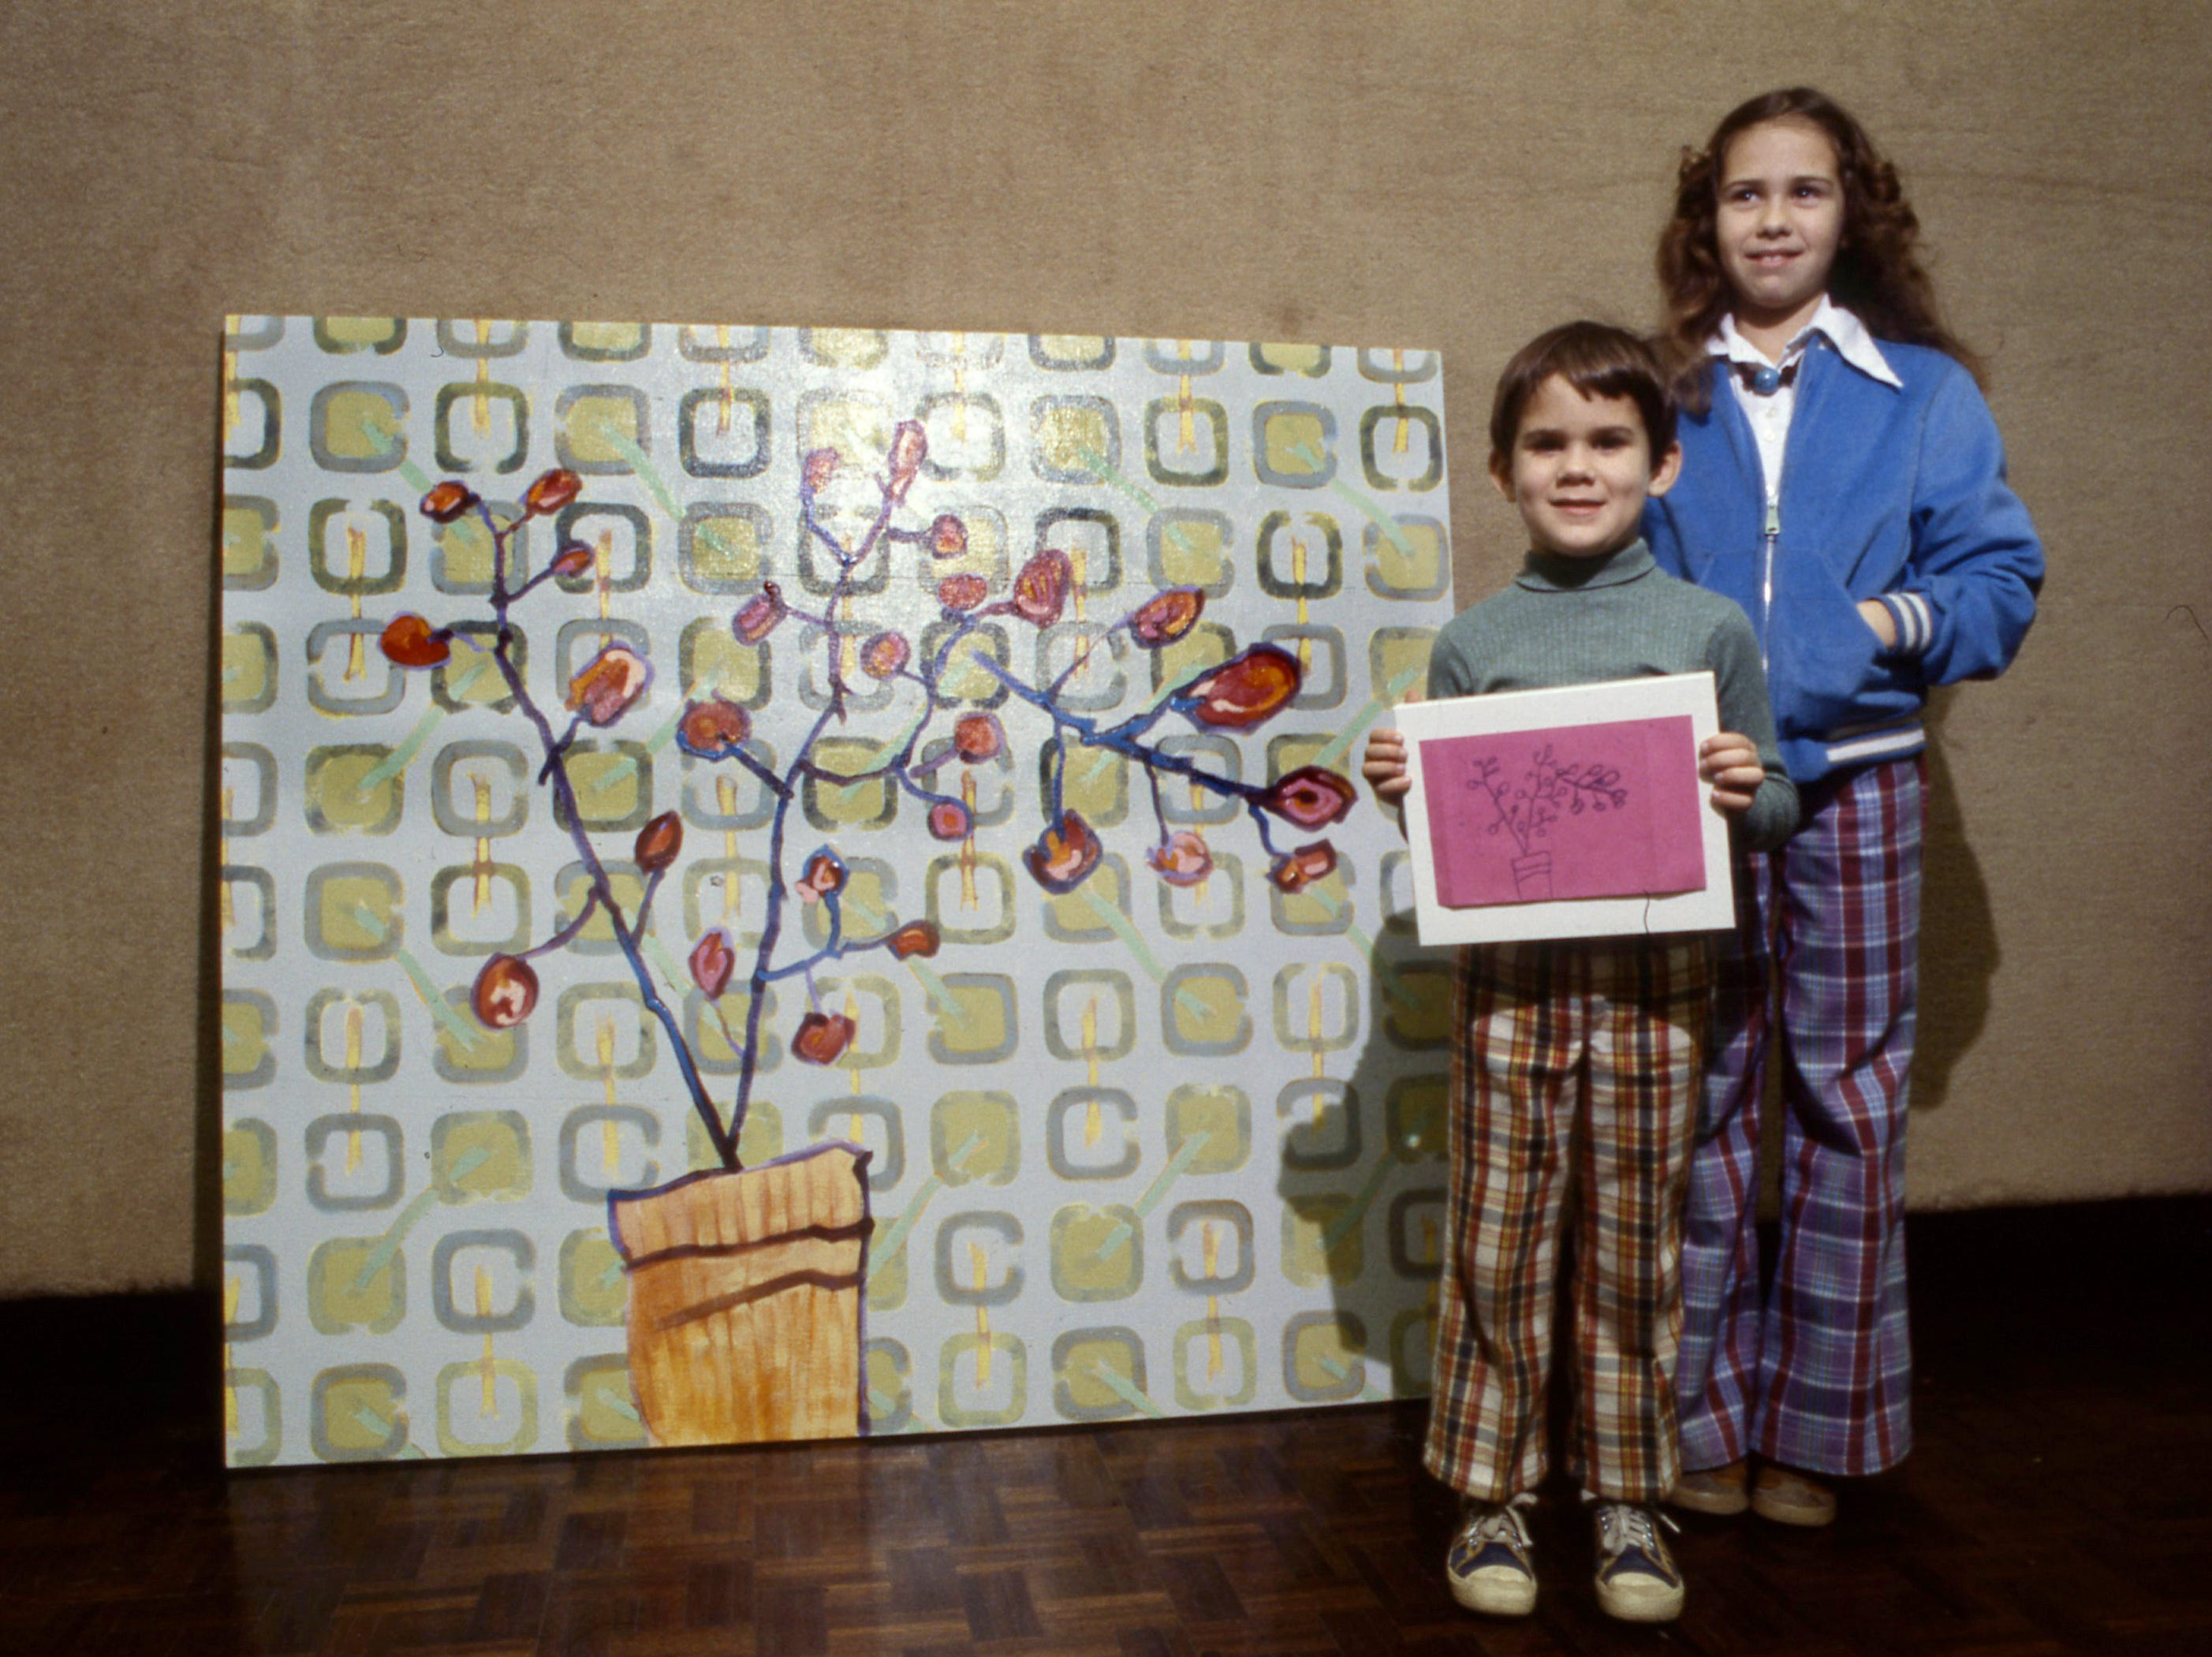 Bradley Hochstetler, 6, and sister Lynn, 11, collaborated on a Magic Marker drawing depicting the lemon tree that stands in the lobby of Austin Peay State University's Trahern Gallery. Their father, Max, reproduced it in his painting, elaborating the background and adding his own idea of colors.